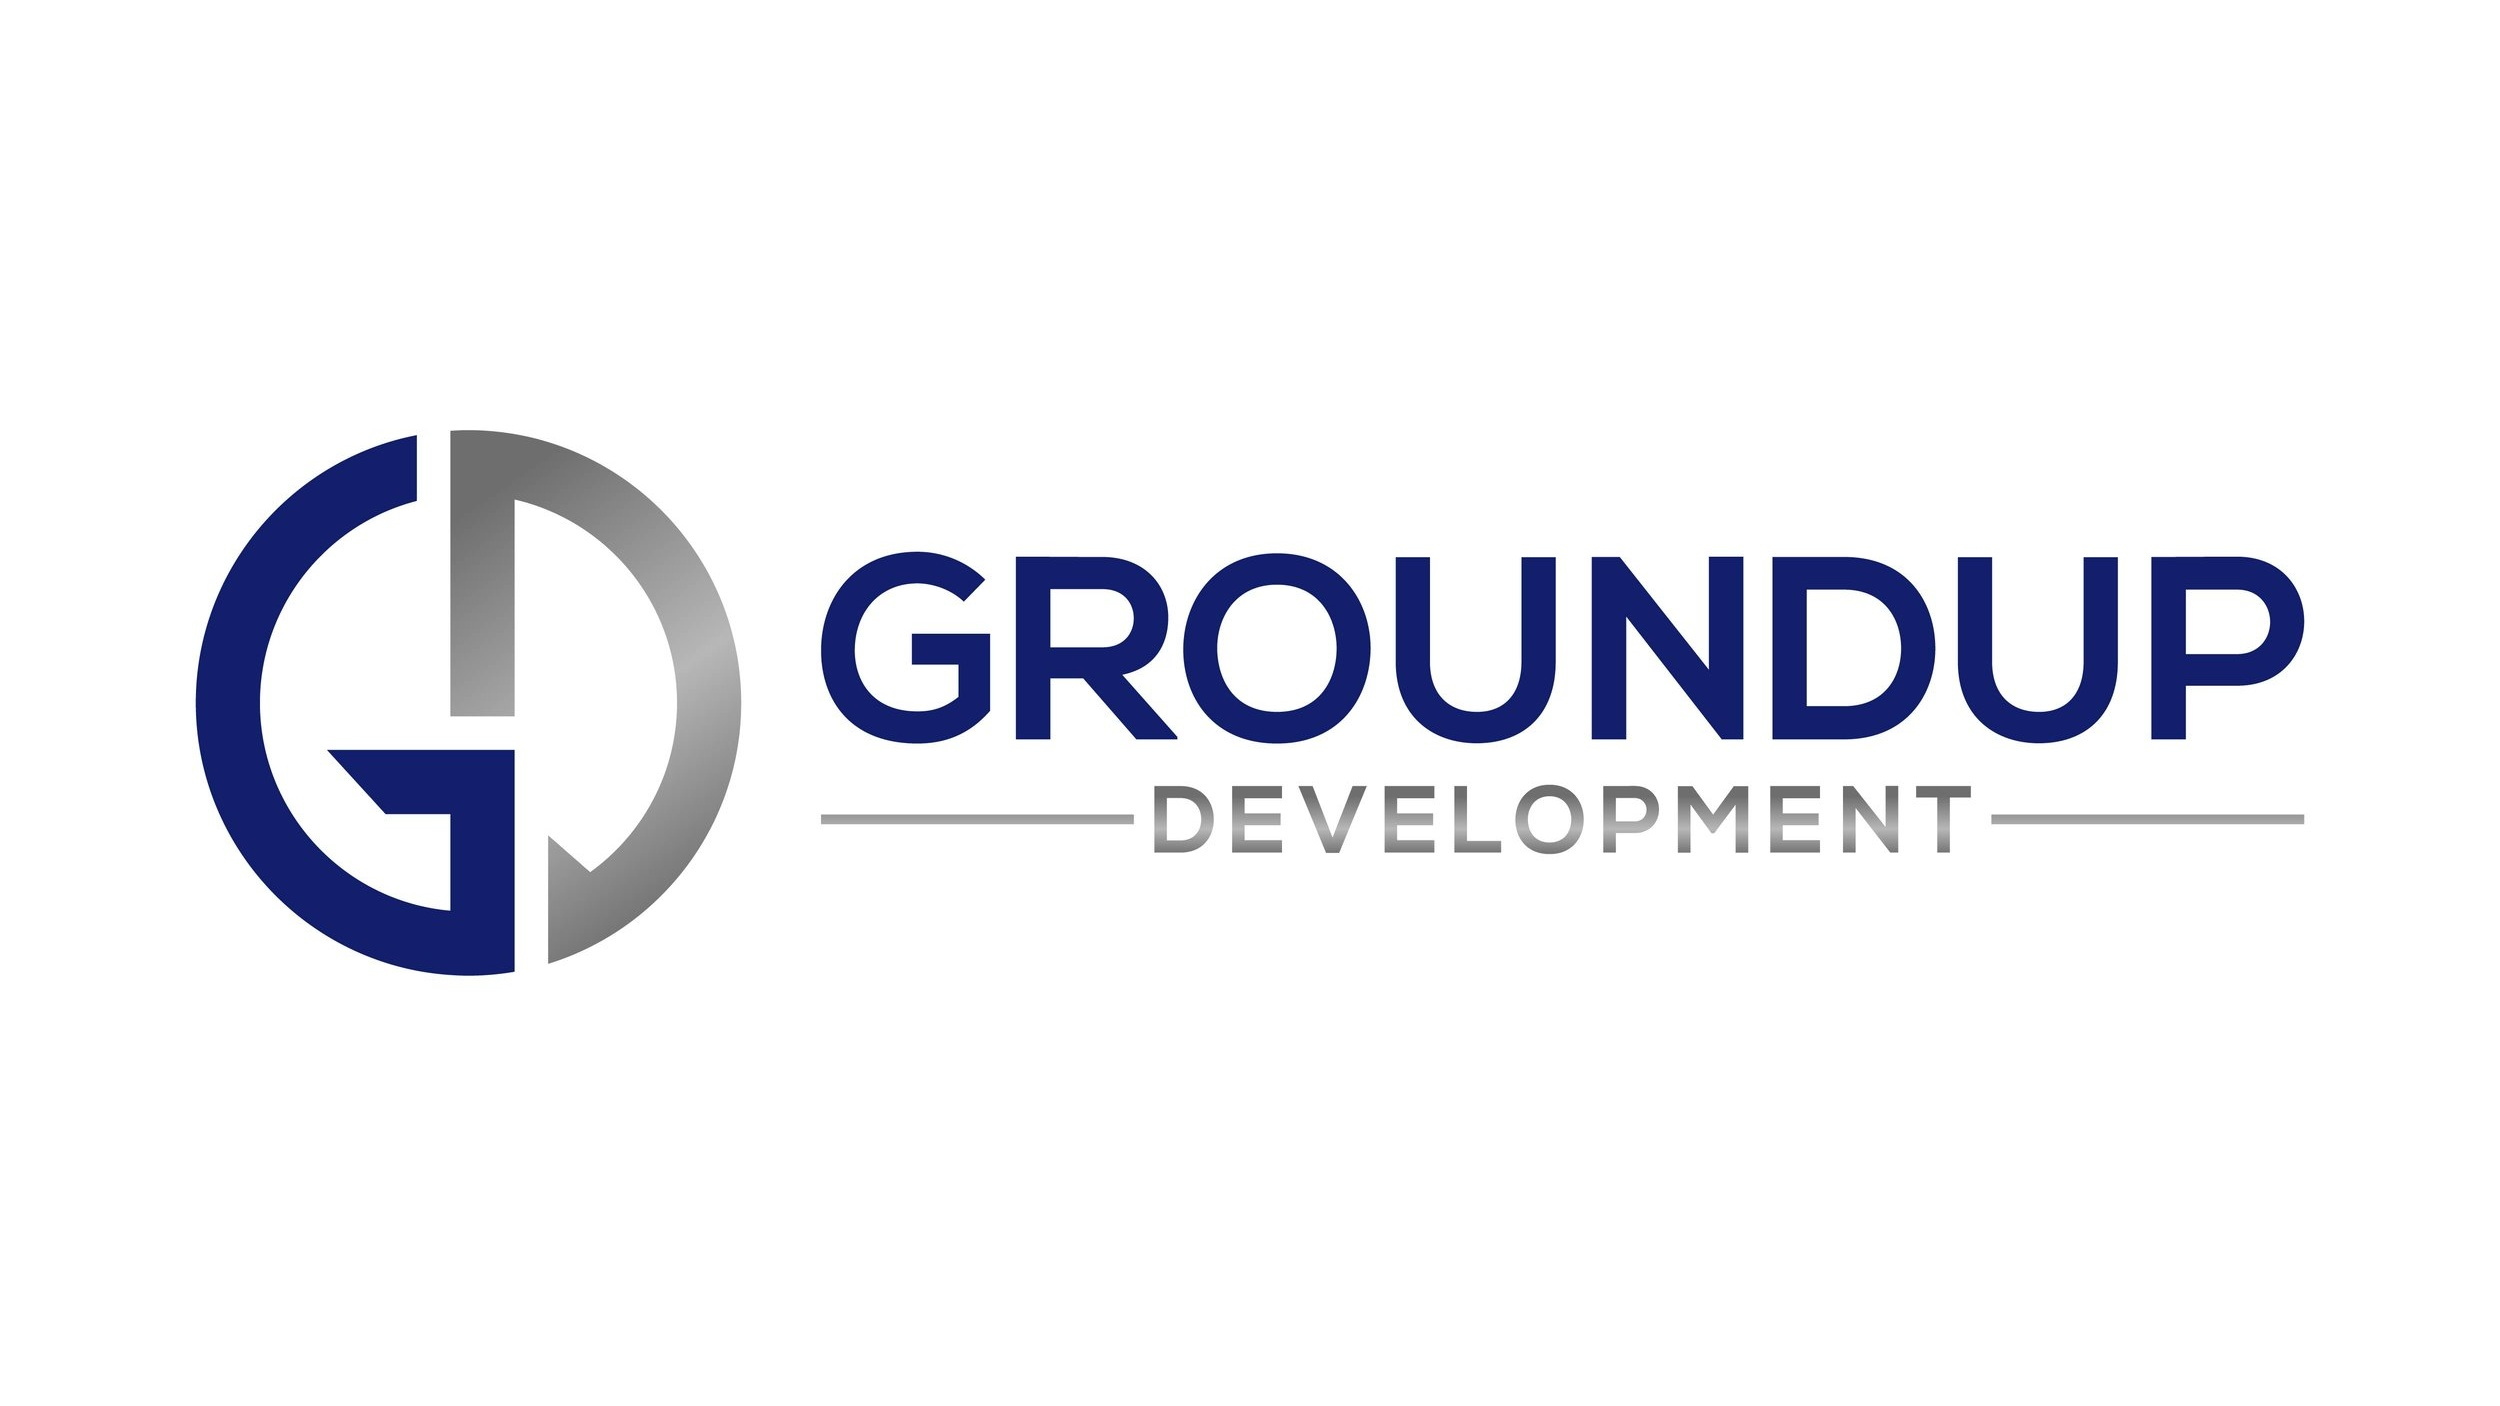 GroundUp+Development-01.jpg